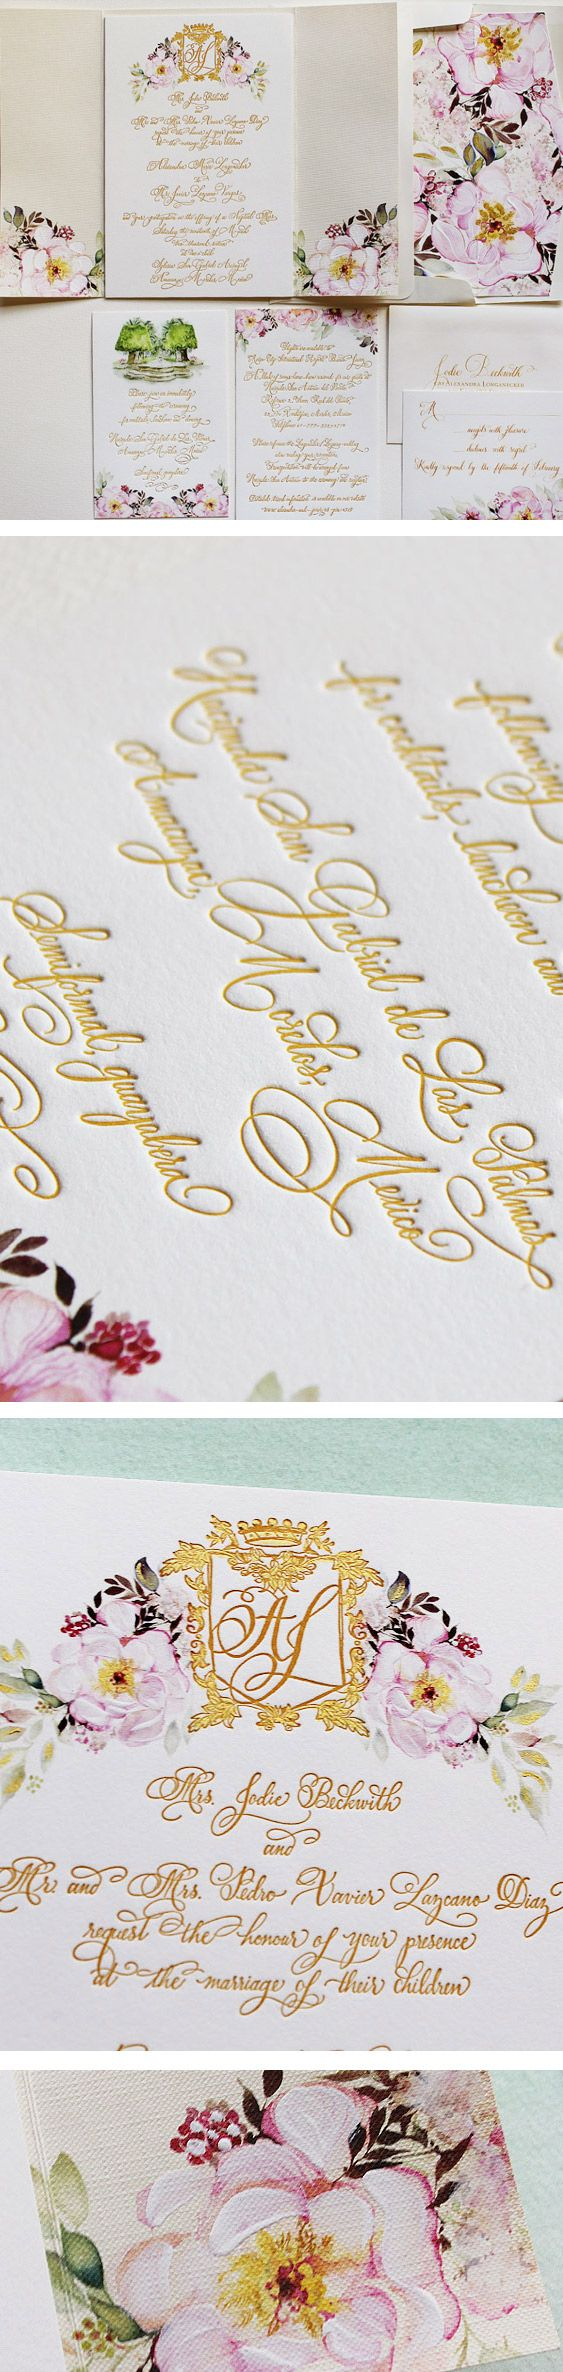 Gold custom calligraphy letterpressed into thick cardstock